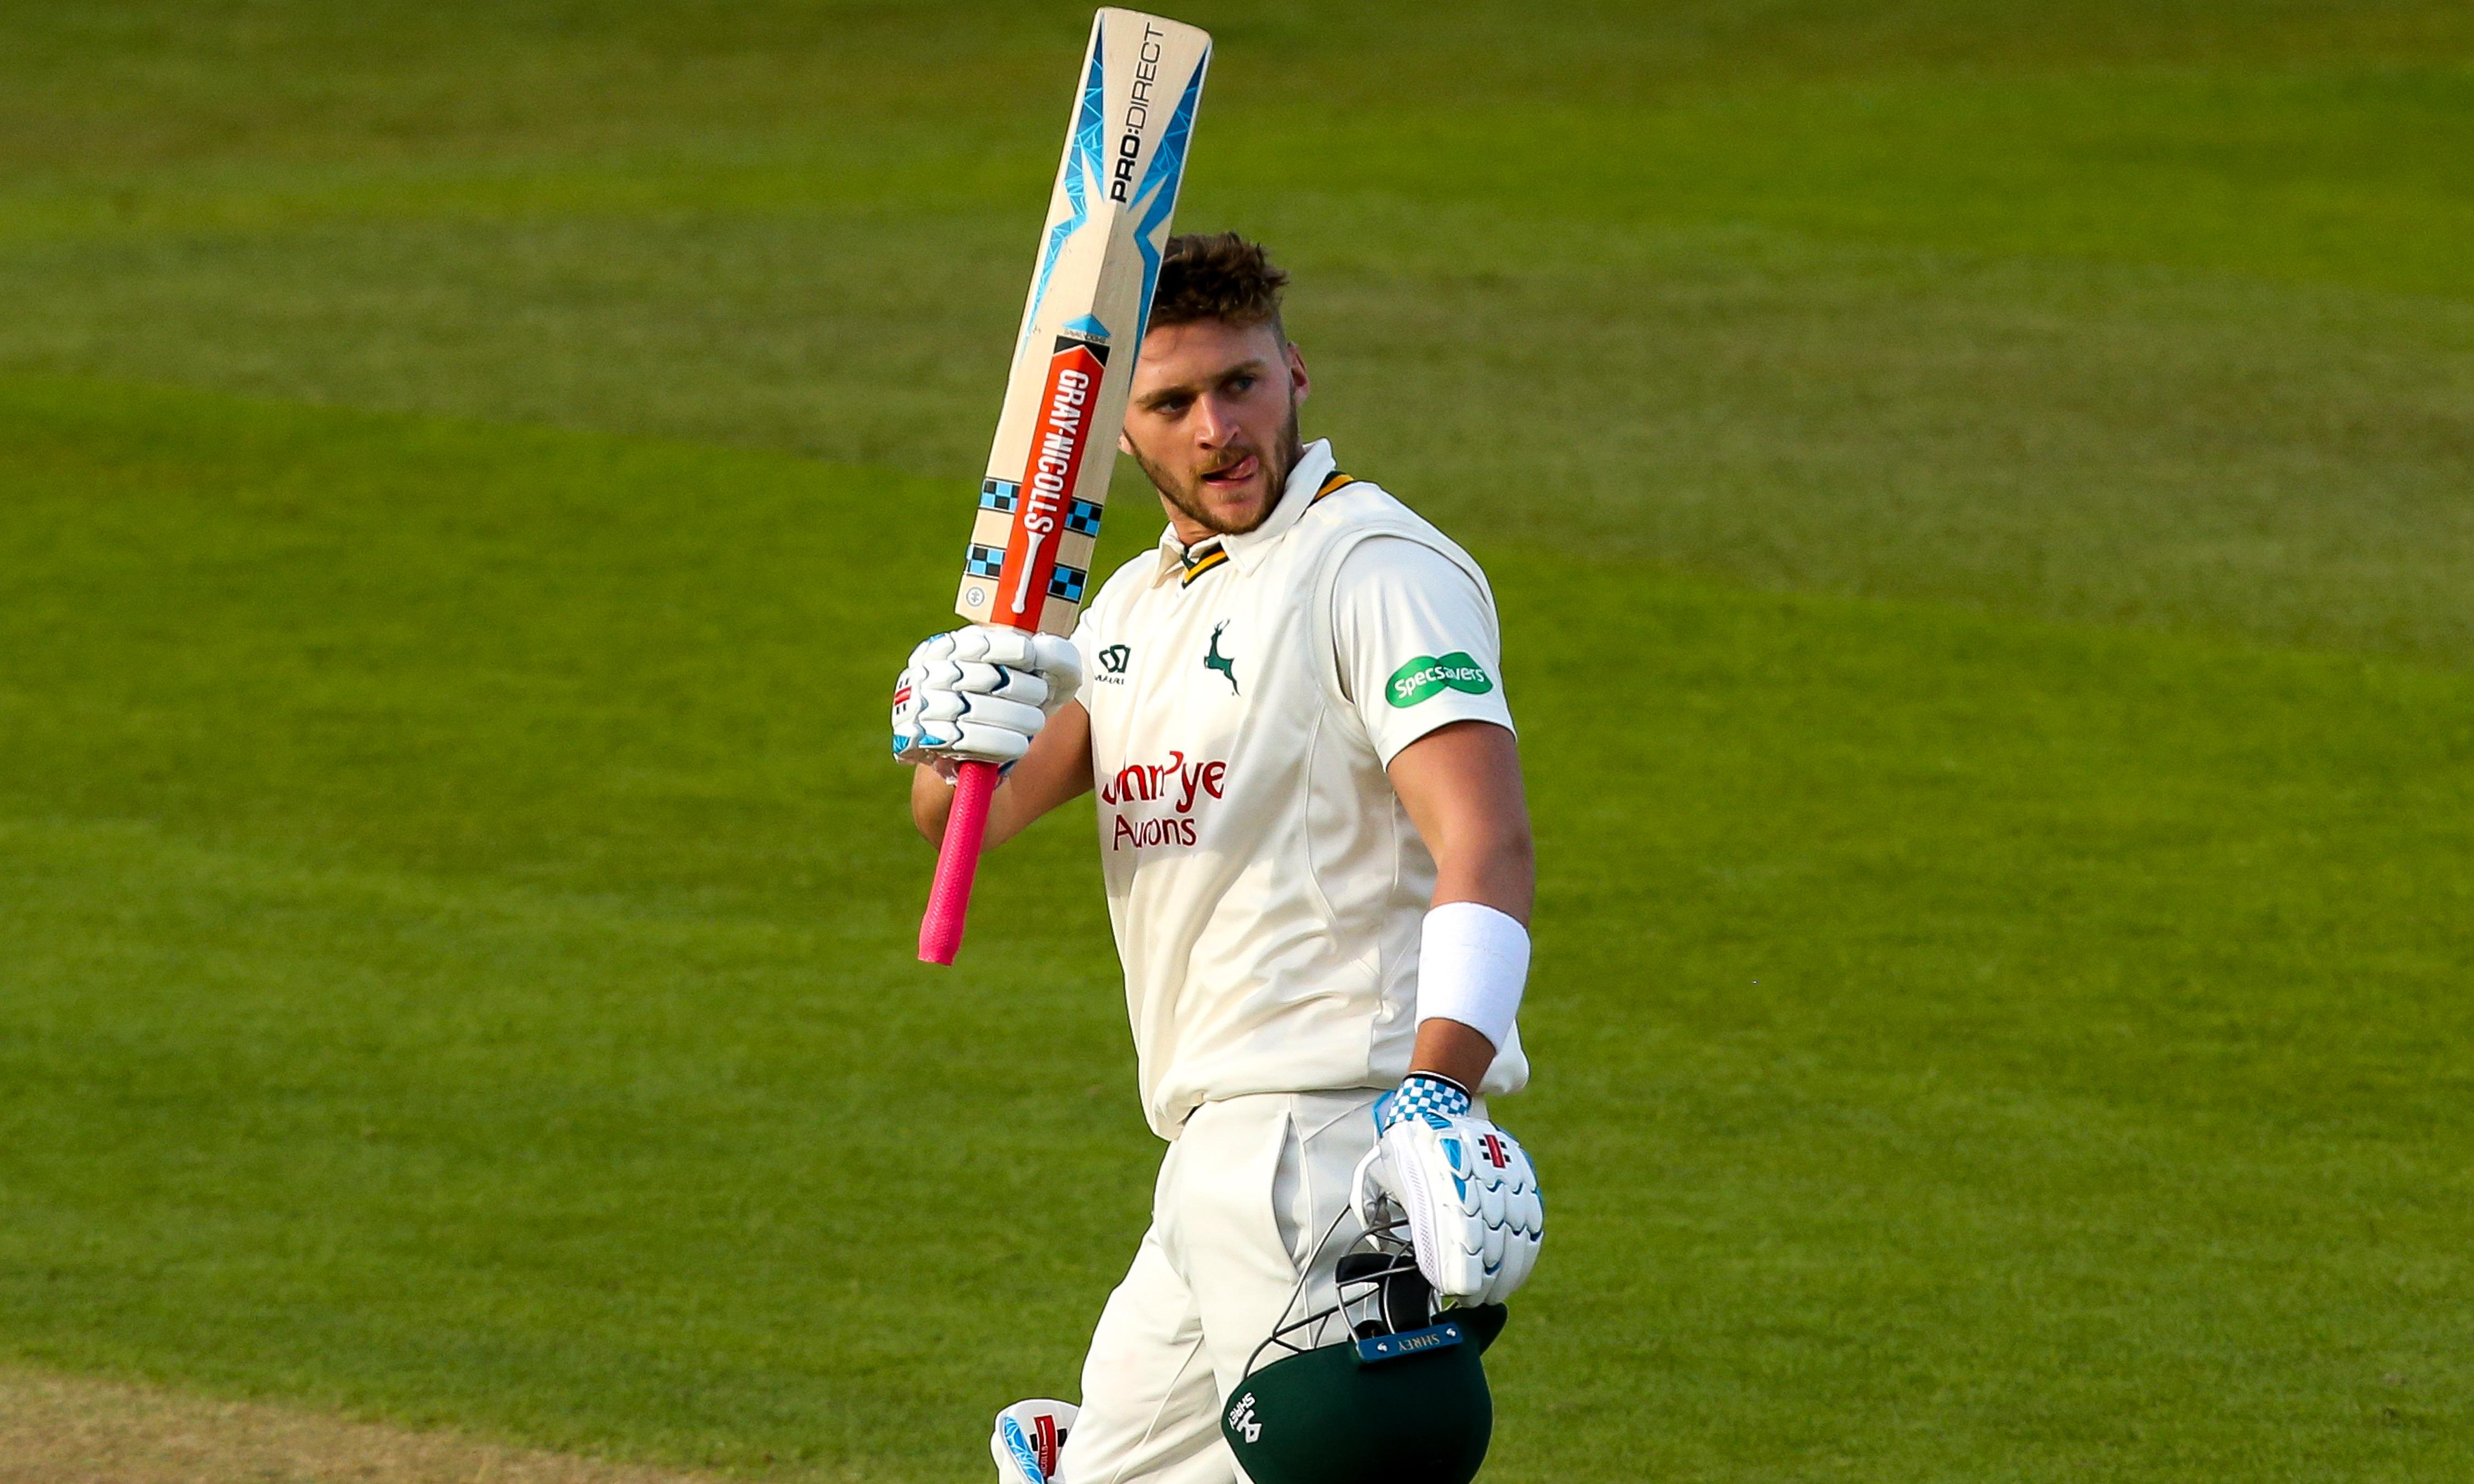 Joe Clarke charms his way to a century on Nottinghamshire debut